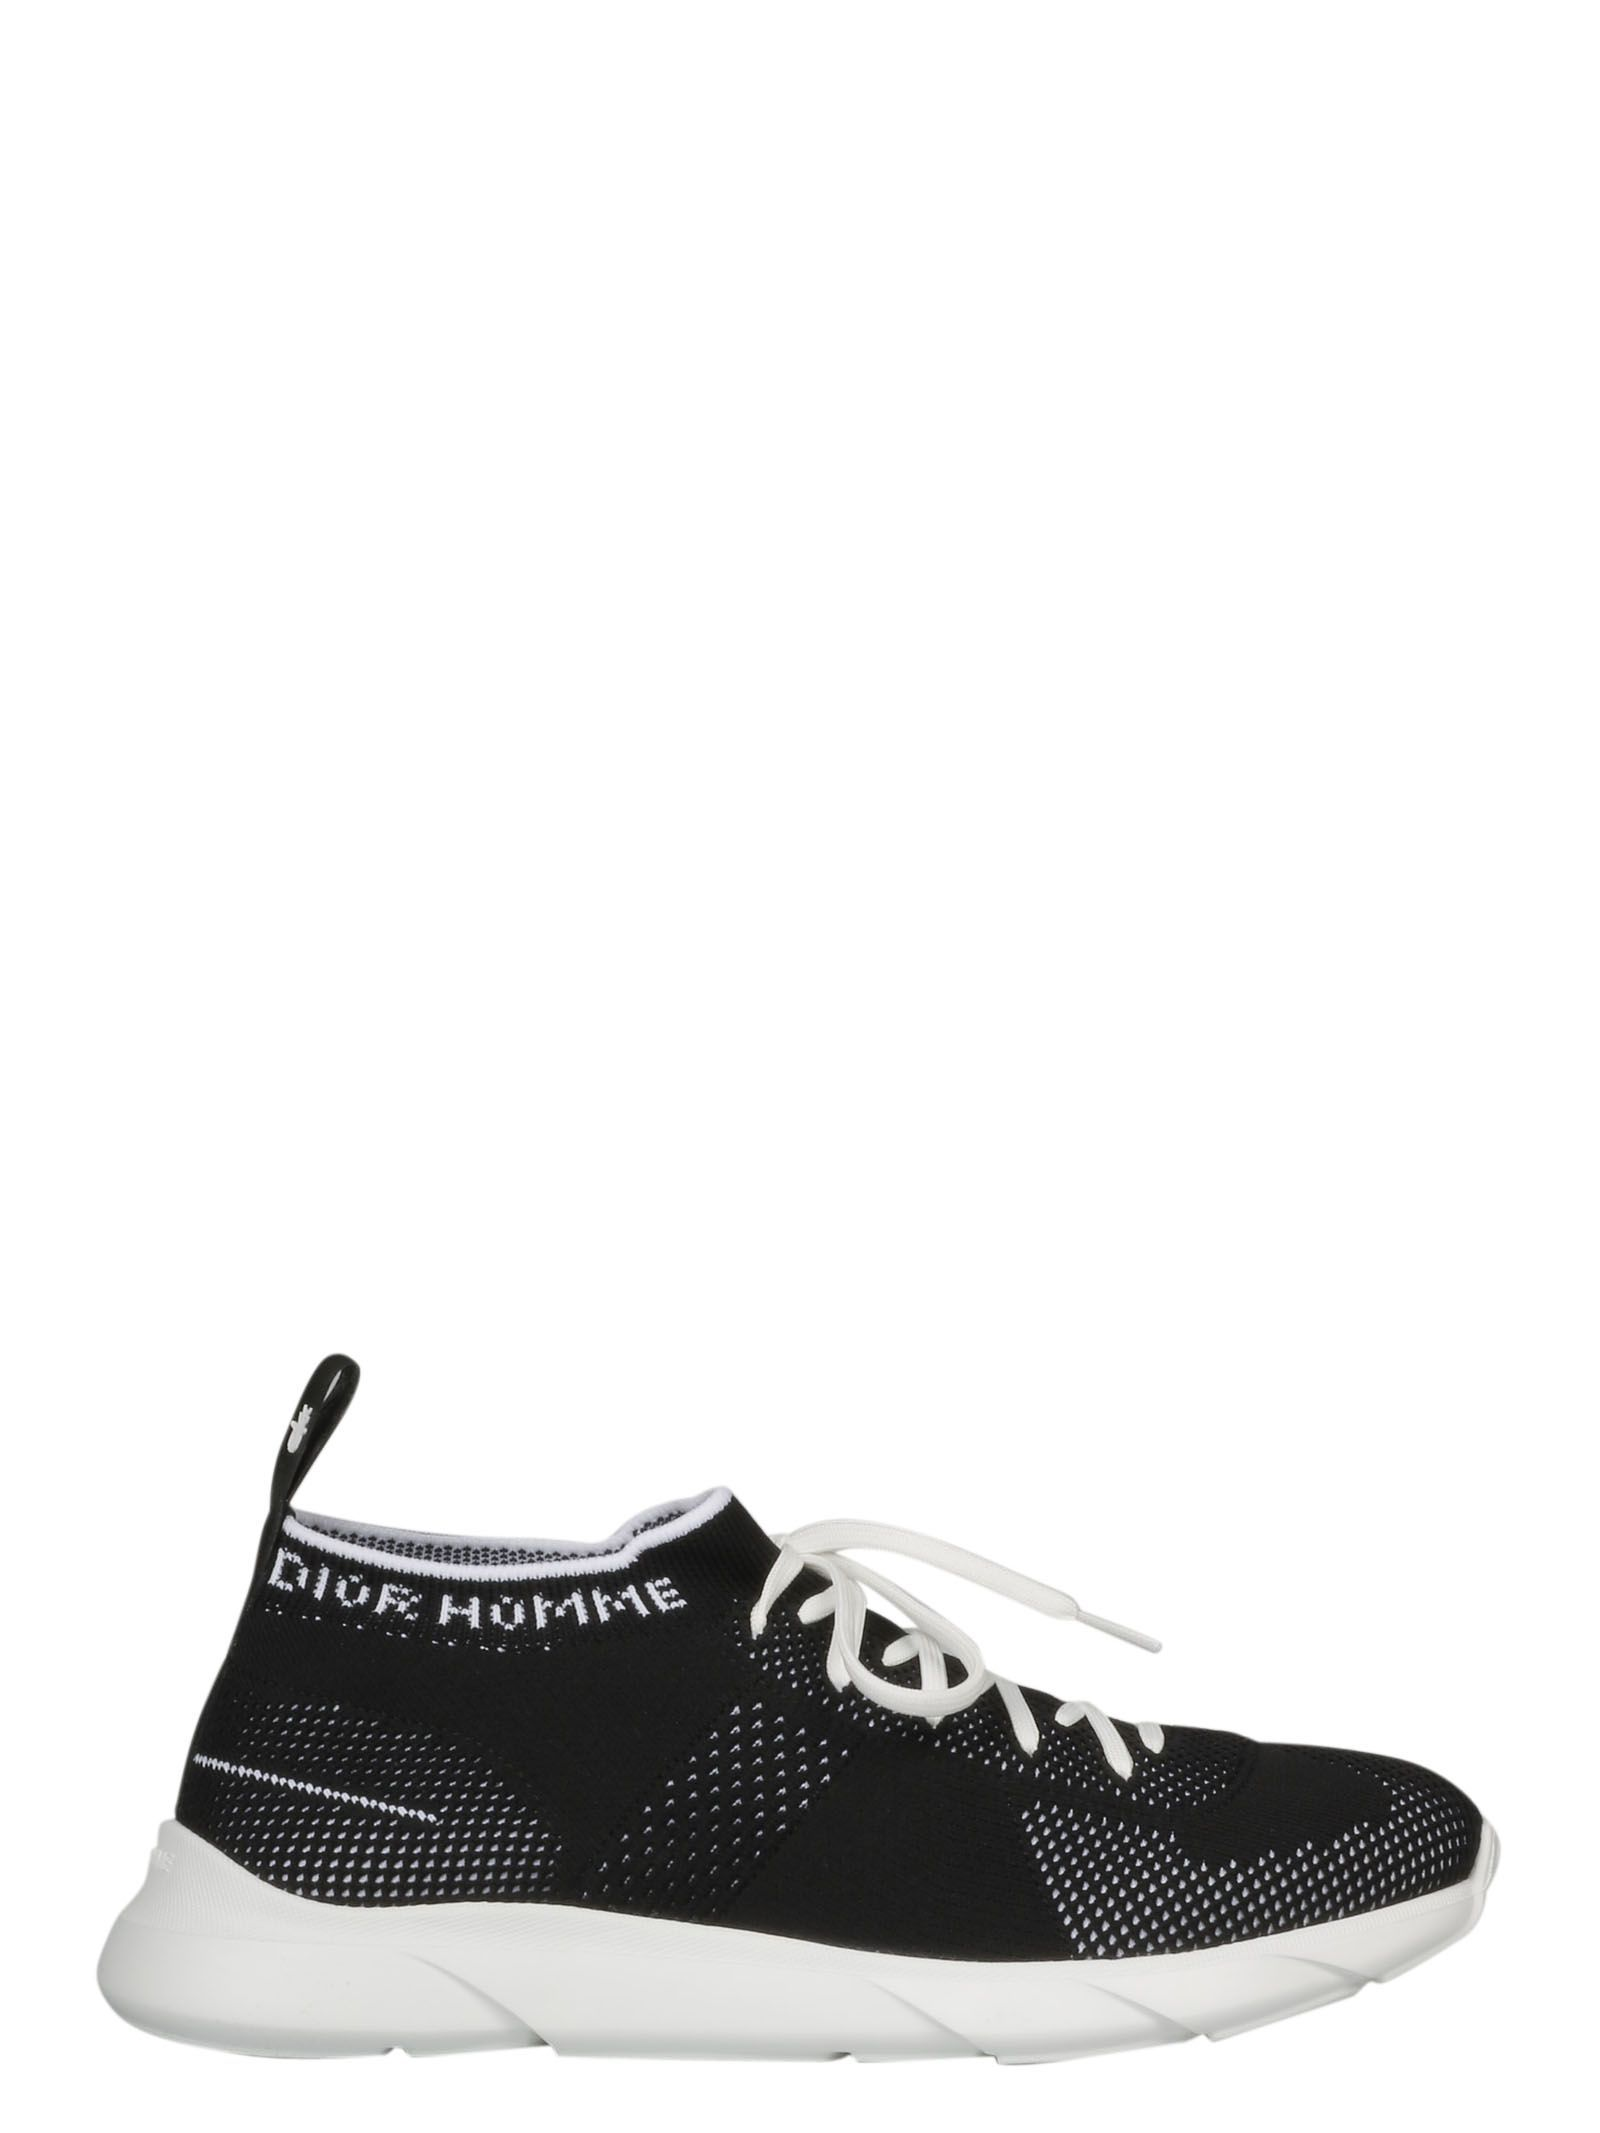 DIOR HOMME 2018 SS SNEAKERS.  dior  shoes     Dior in 2019 ... 90dac873837